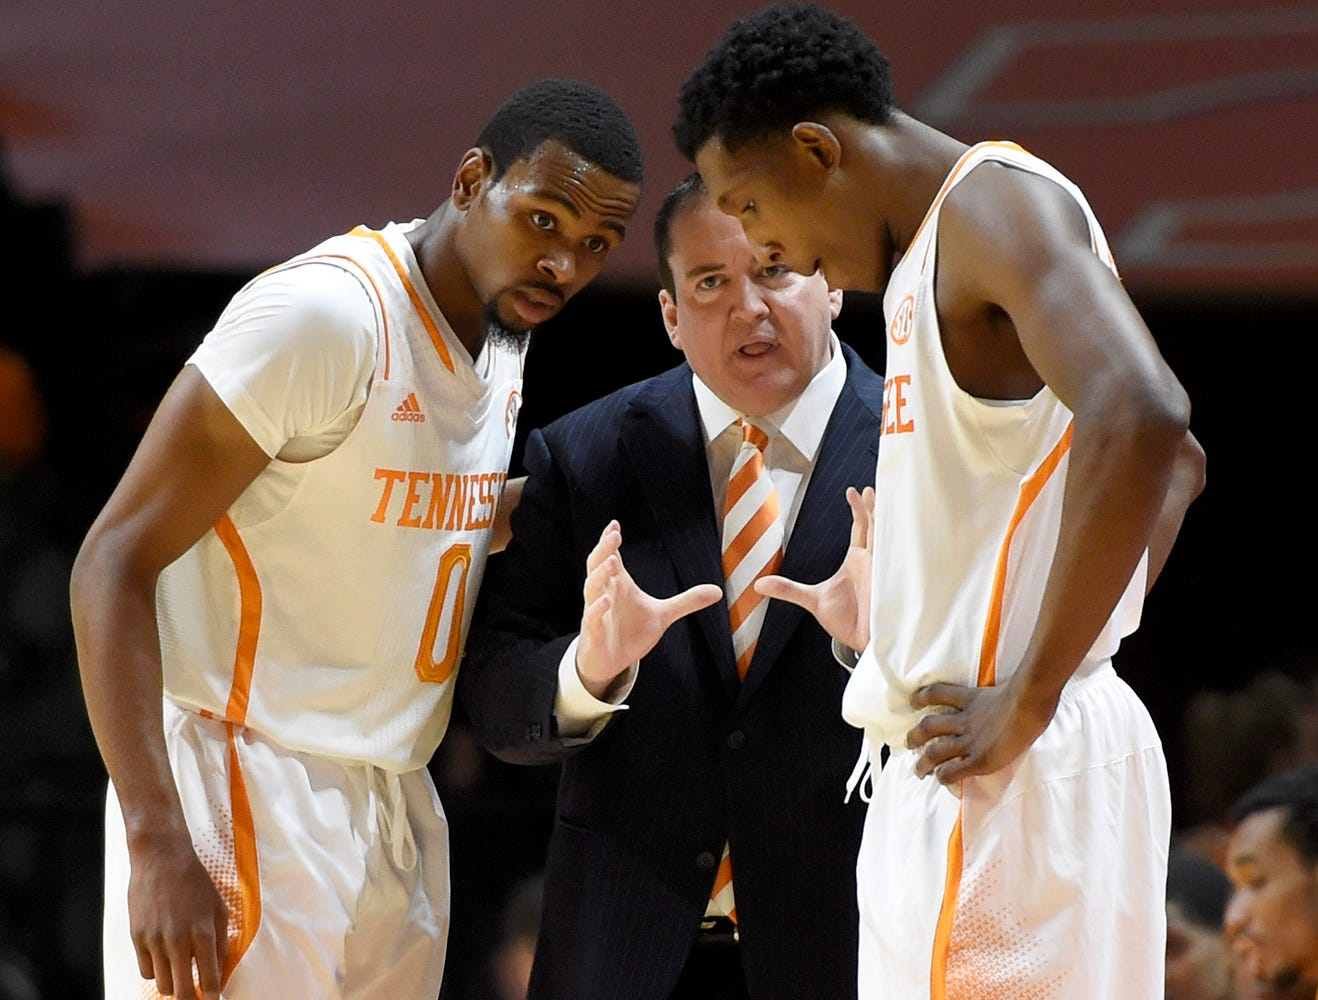 Tennessee coach Donnie Tyndall talks with Tennessee guard Kevin Punter (0) and Tennessee guard Josh Richardson (1) during their NCAA college basketball game against Kansas State at Thompson-Boling Arena in Knoxville, Tenn., Saturday, Dec. 6, 2014.  Tennessee won 65-64.